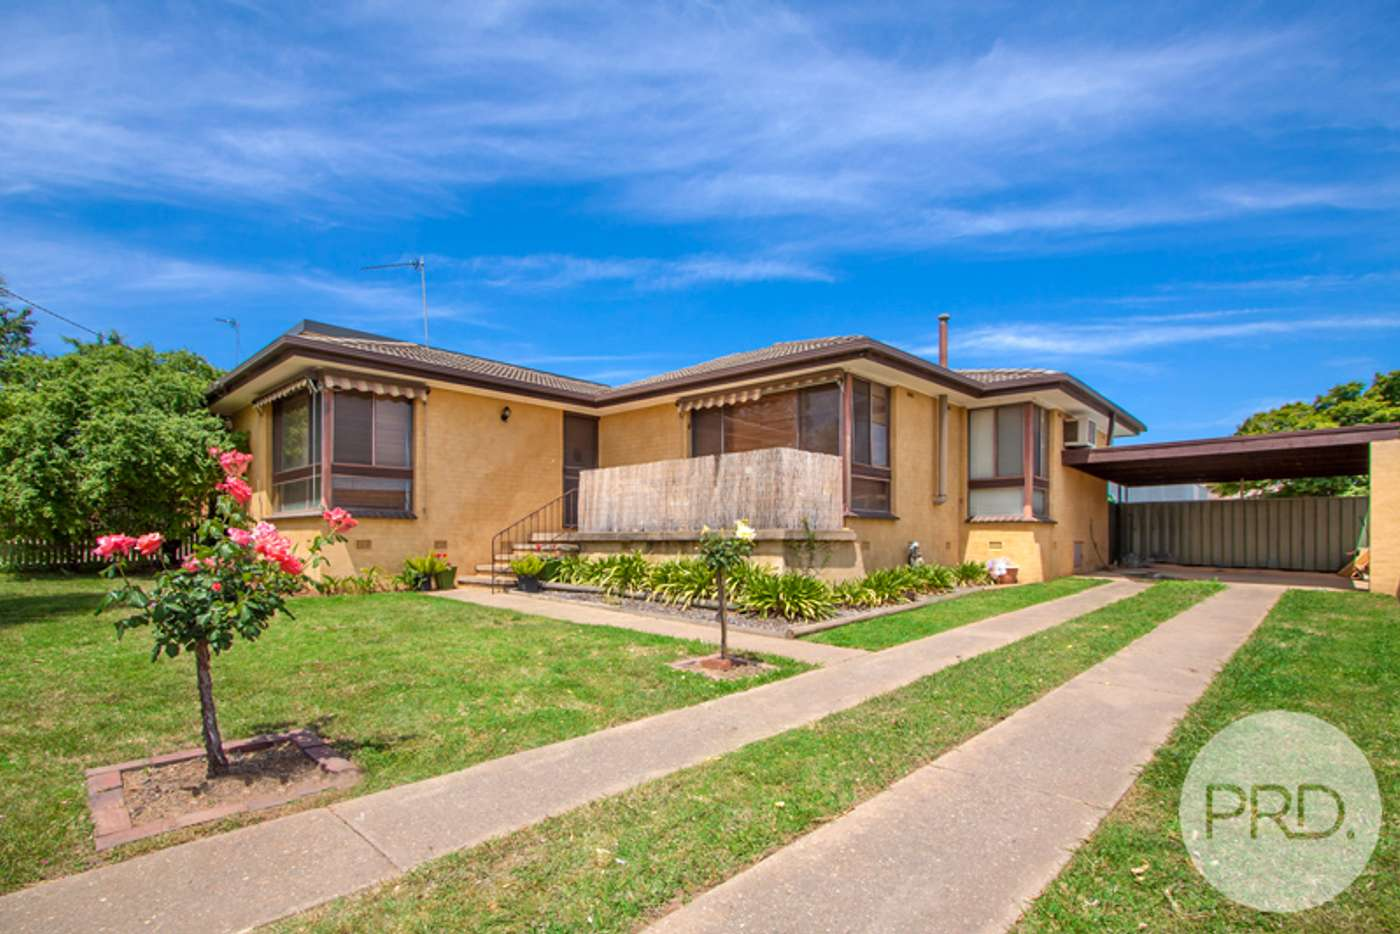 Main view of Homely house listing, 10 Temerloh Avenue, Tolland NSW 2650